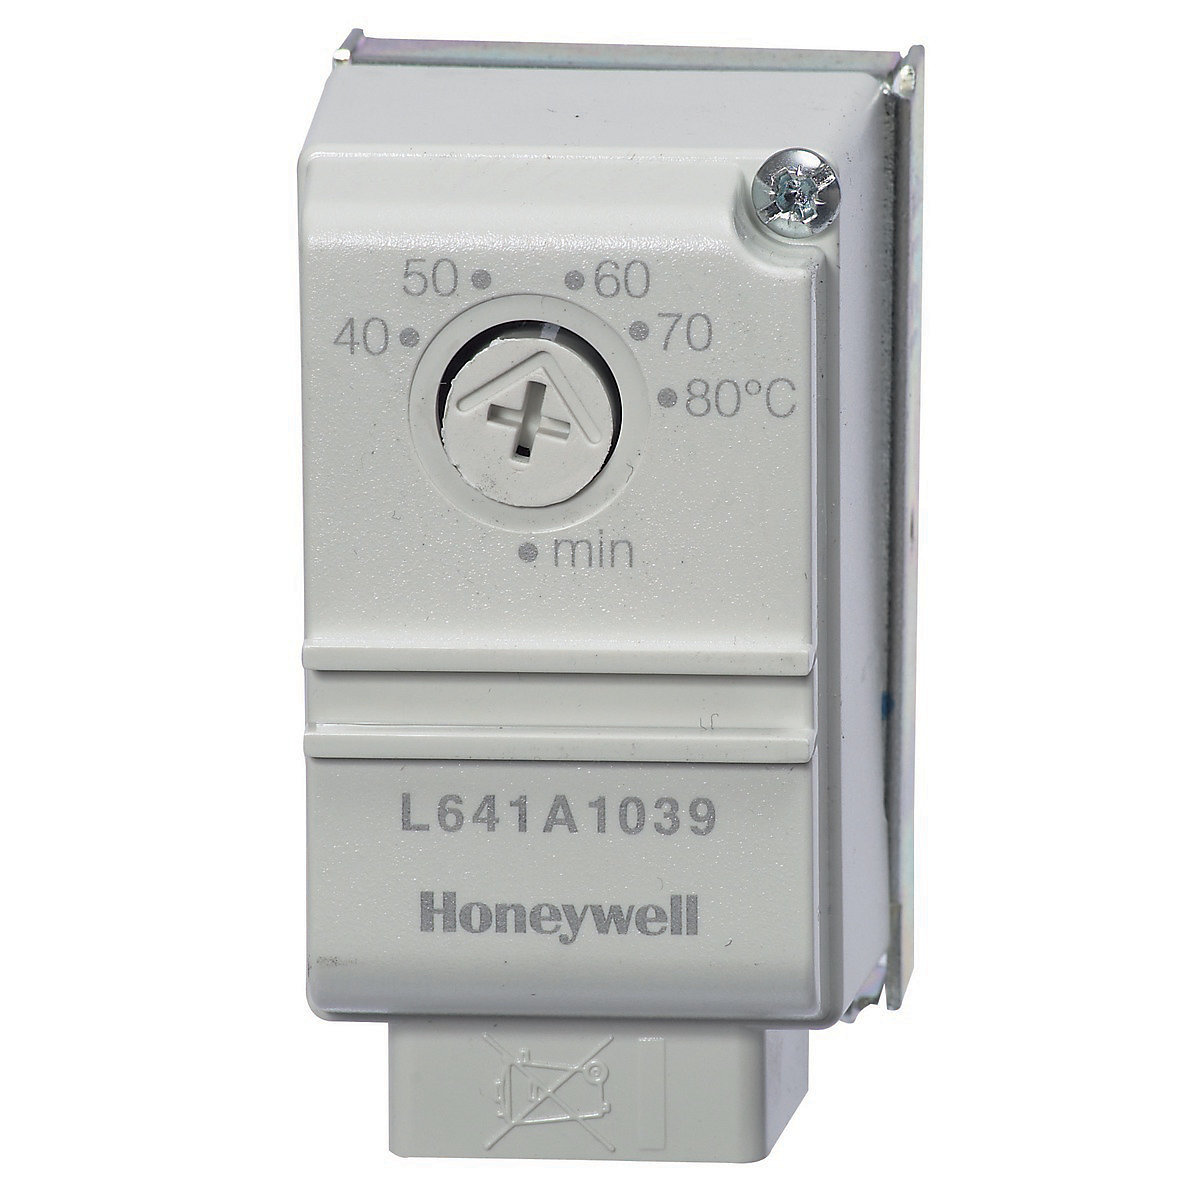 Central Heating Thermostats | Wireless Thermostats | Travis Perkins